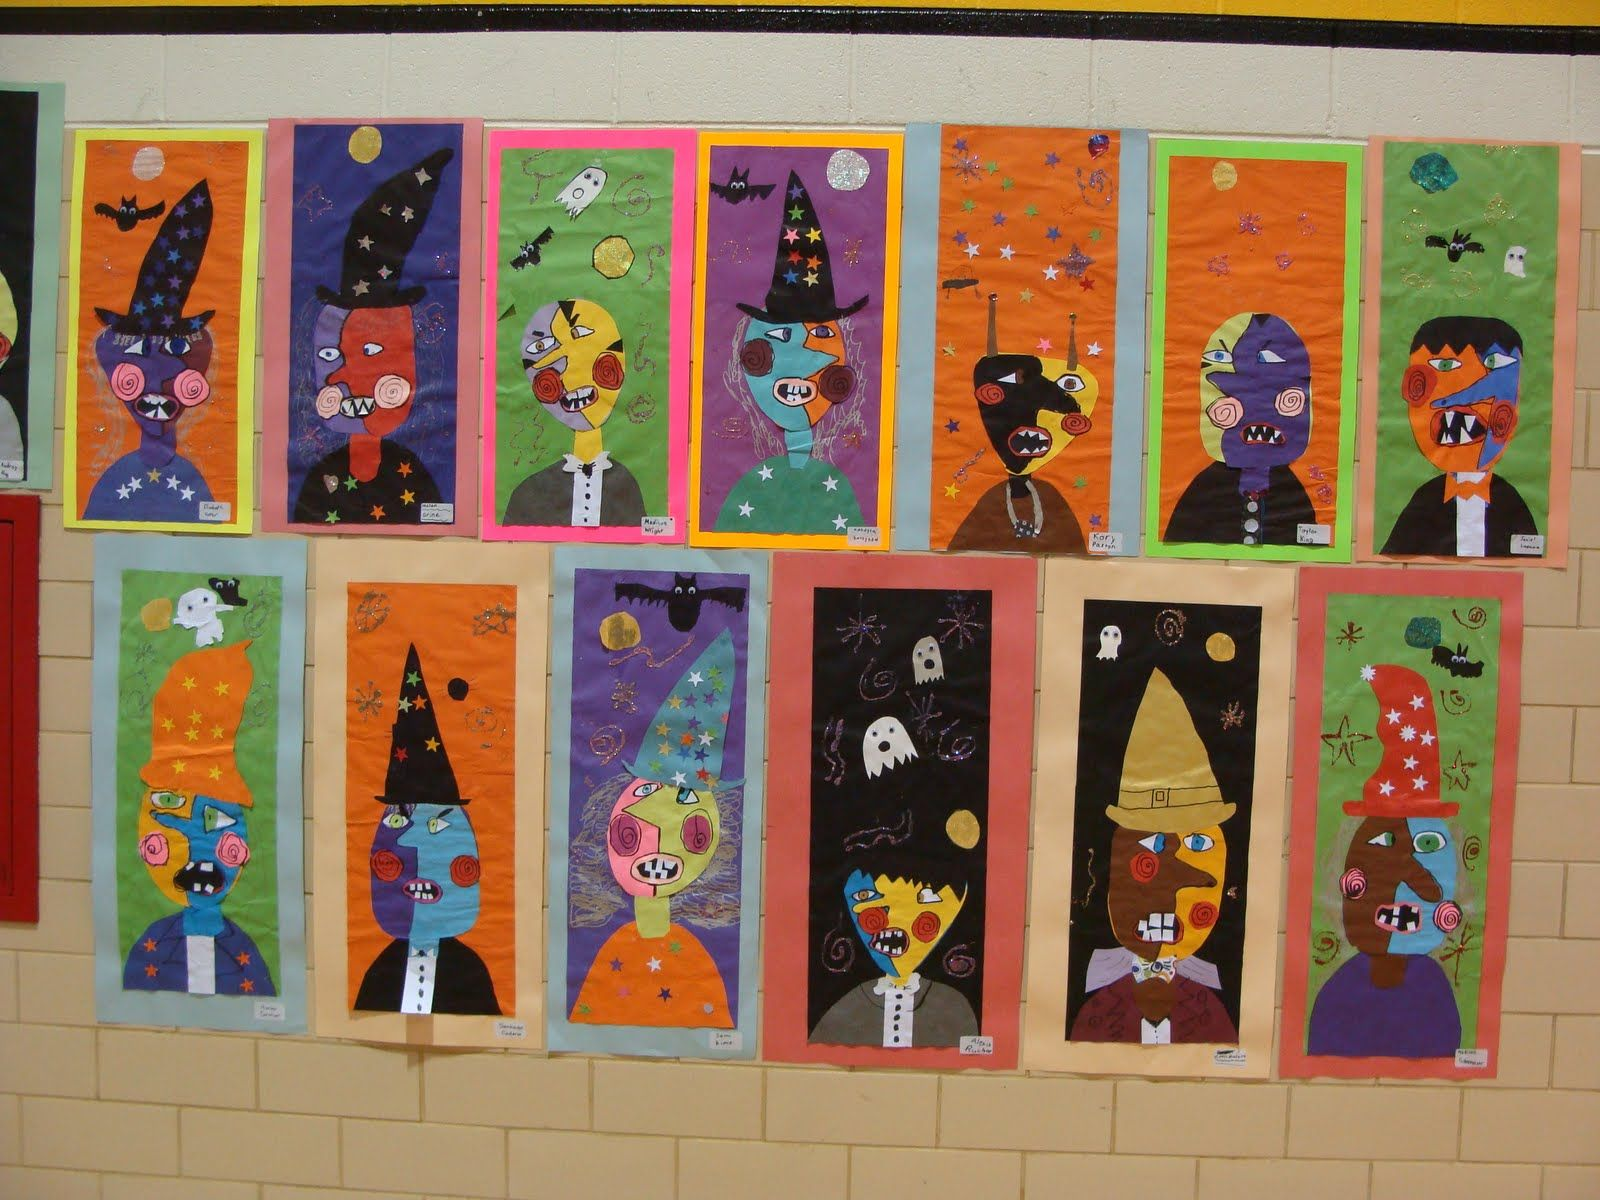 Picasso Lesson Plans For Elementary School